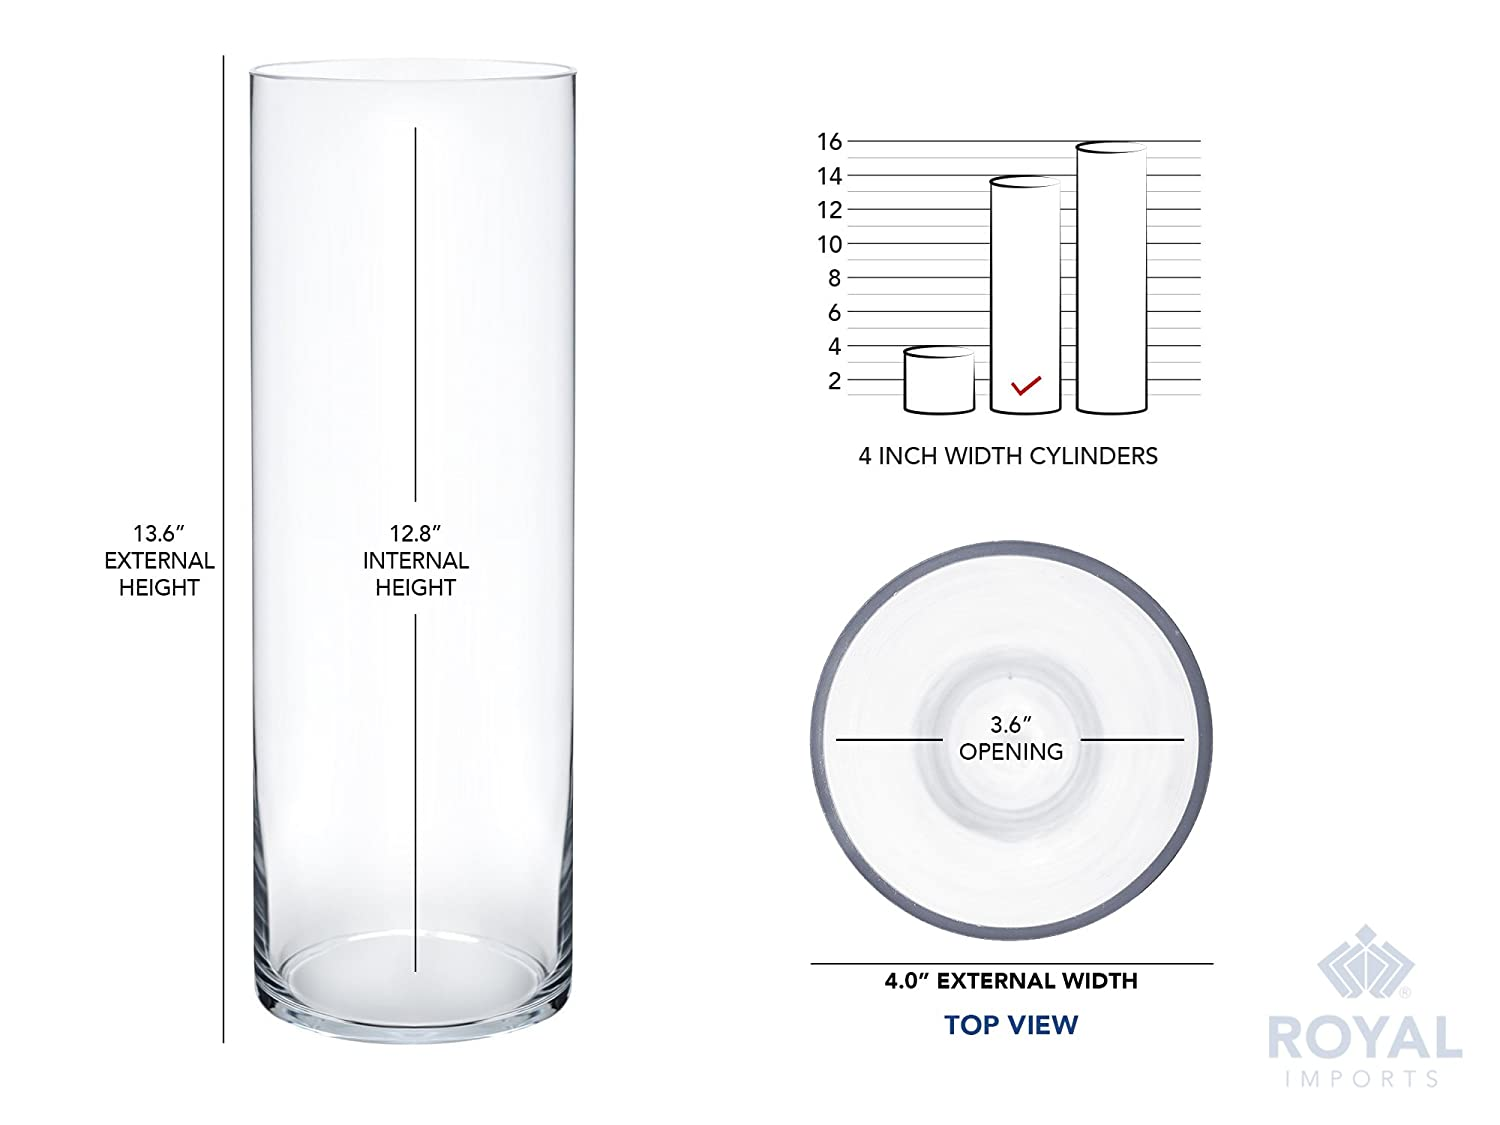 Clear 3.5 Opening 6 Tall Royal Imports Flower Glass Vase Decorative Centerpiece for Home or Wedding Cylinder Shape